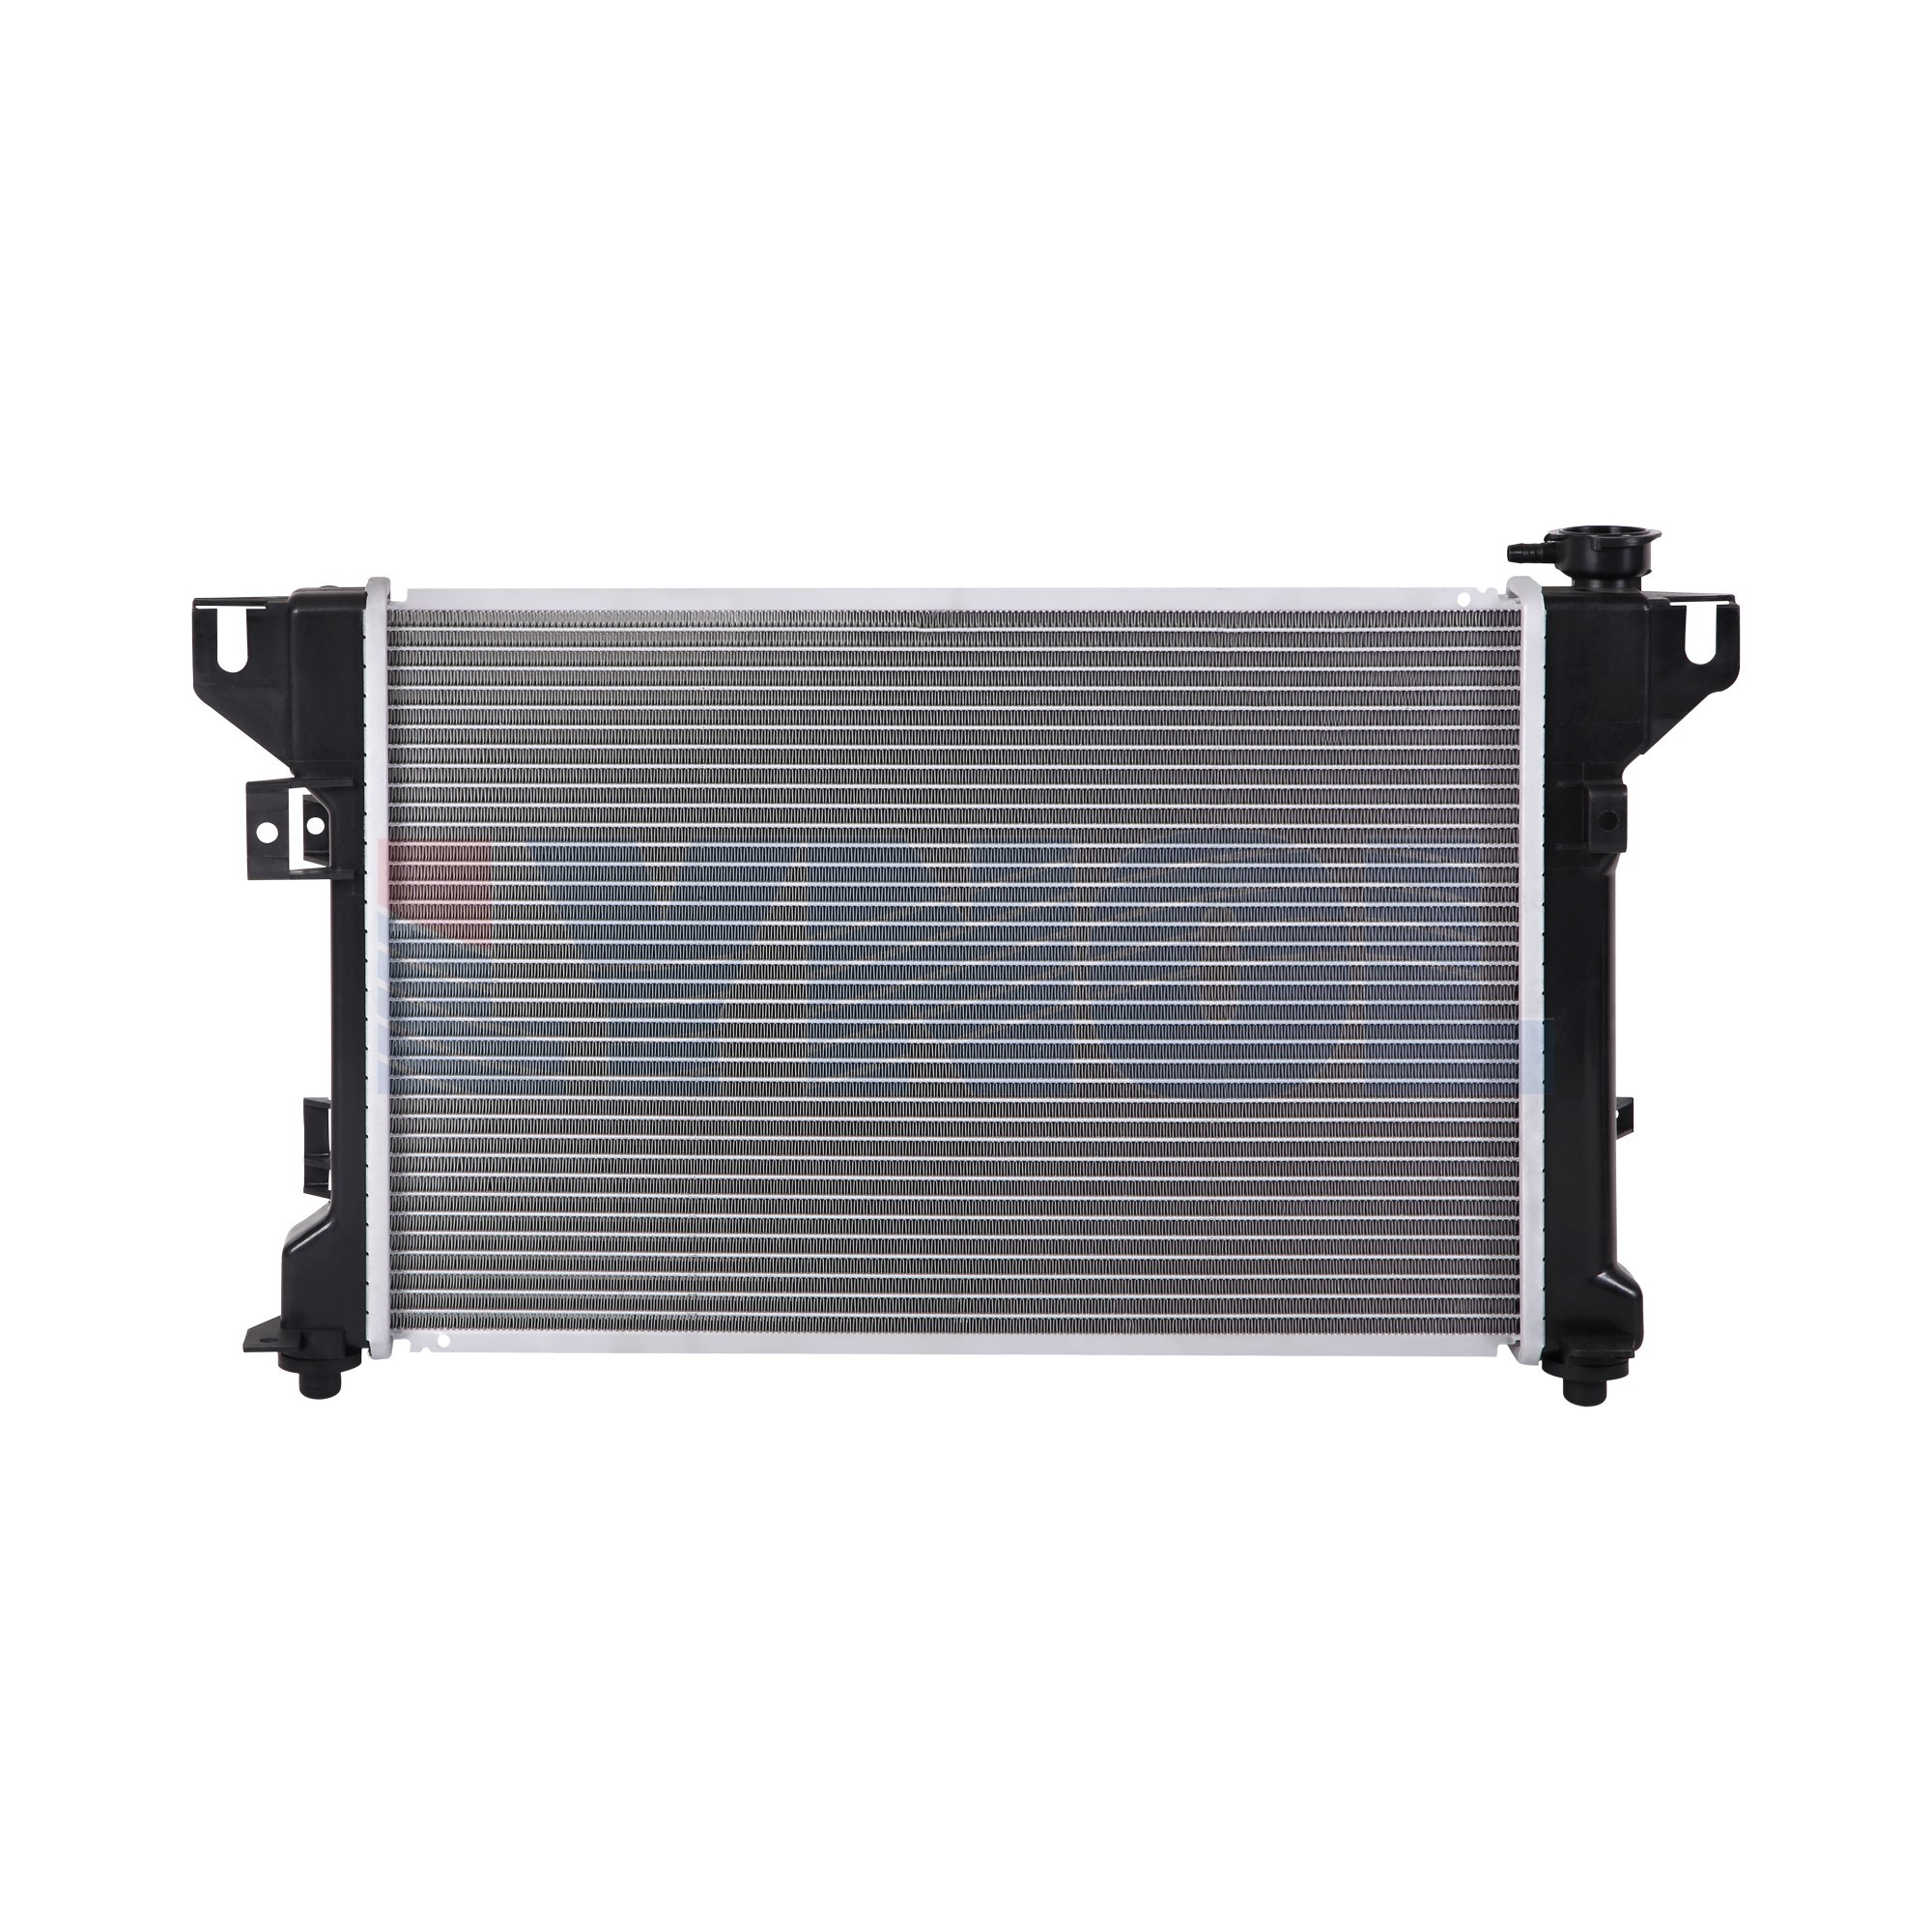 LR1108 - RADIATOR  - 91-94 DODGE SHADOW/SPIRIT 91-95 CHRYSLER LEBARON